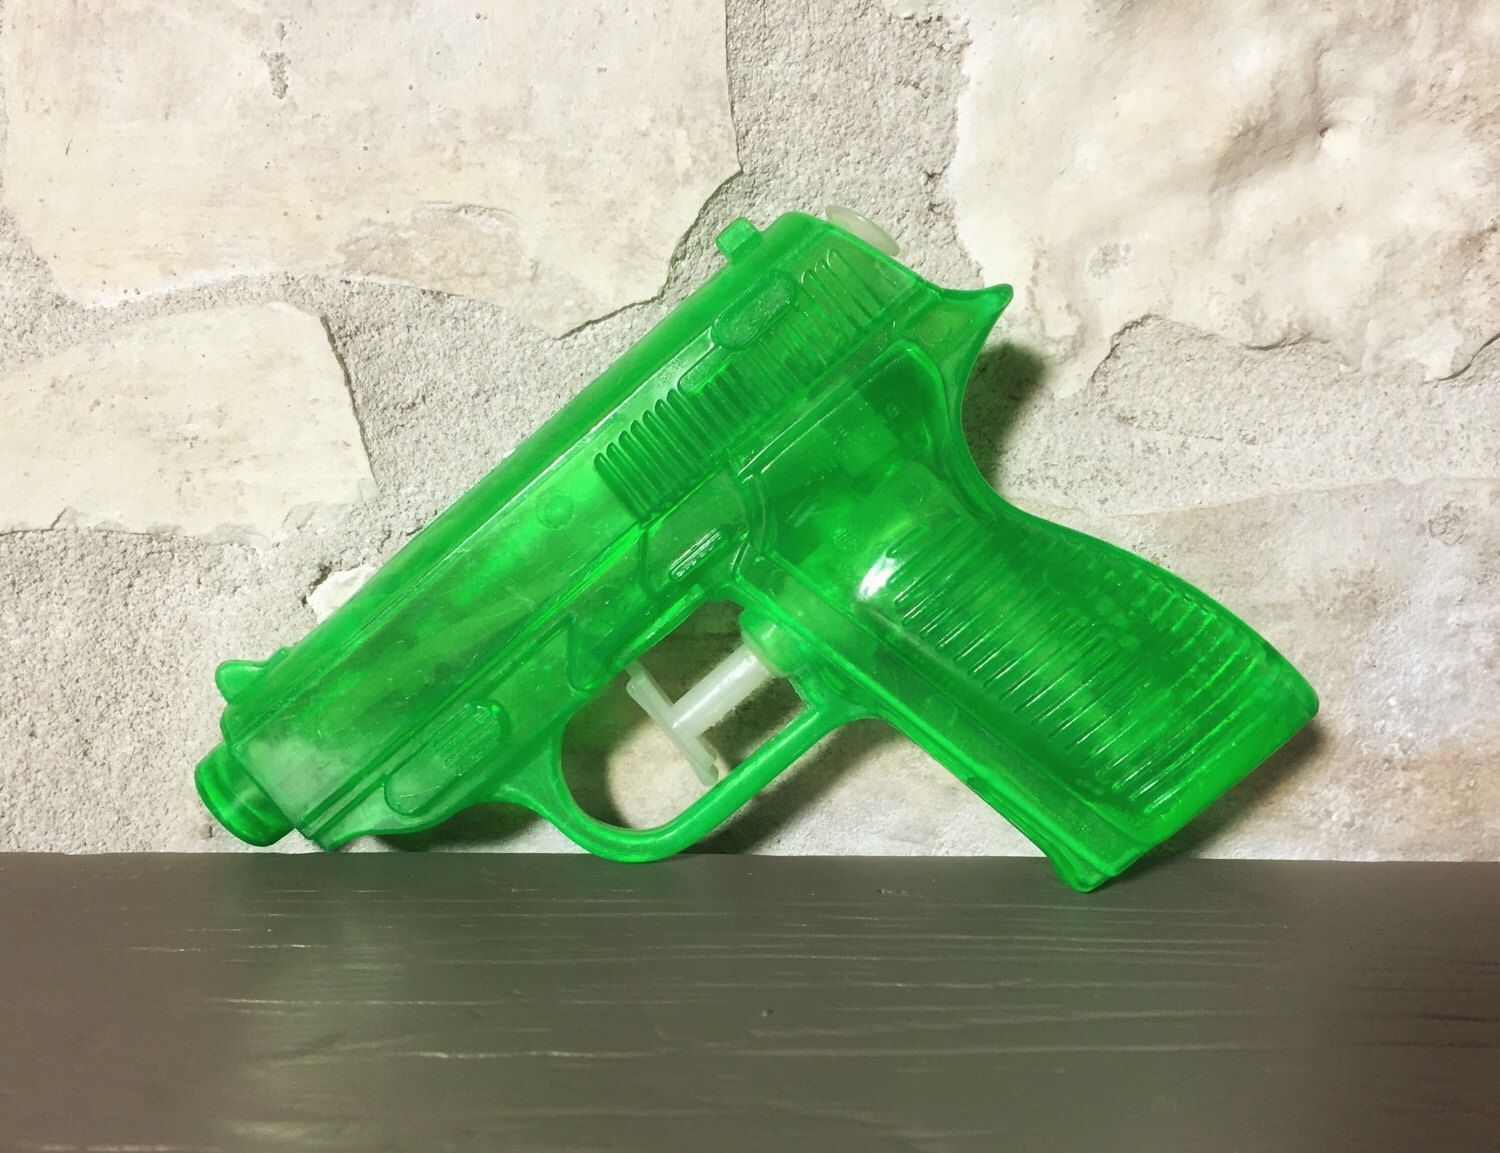 1950s Vintage Green Plastic Toy Water Gun - Made in Hong Kong by Artimorean on Etsy https://www.etsy.com/listing/239890217/1950s-vintage-green-plastic-toy-water